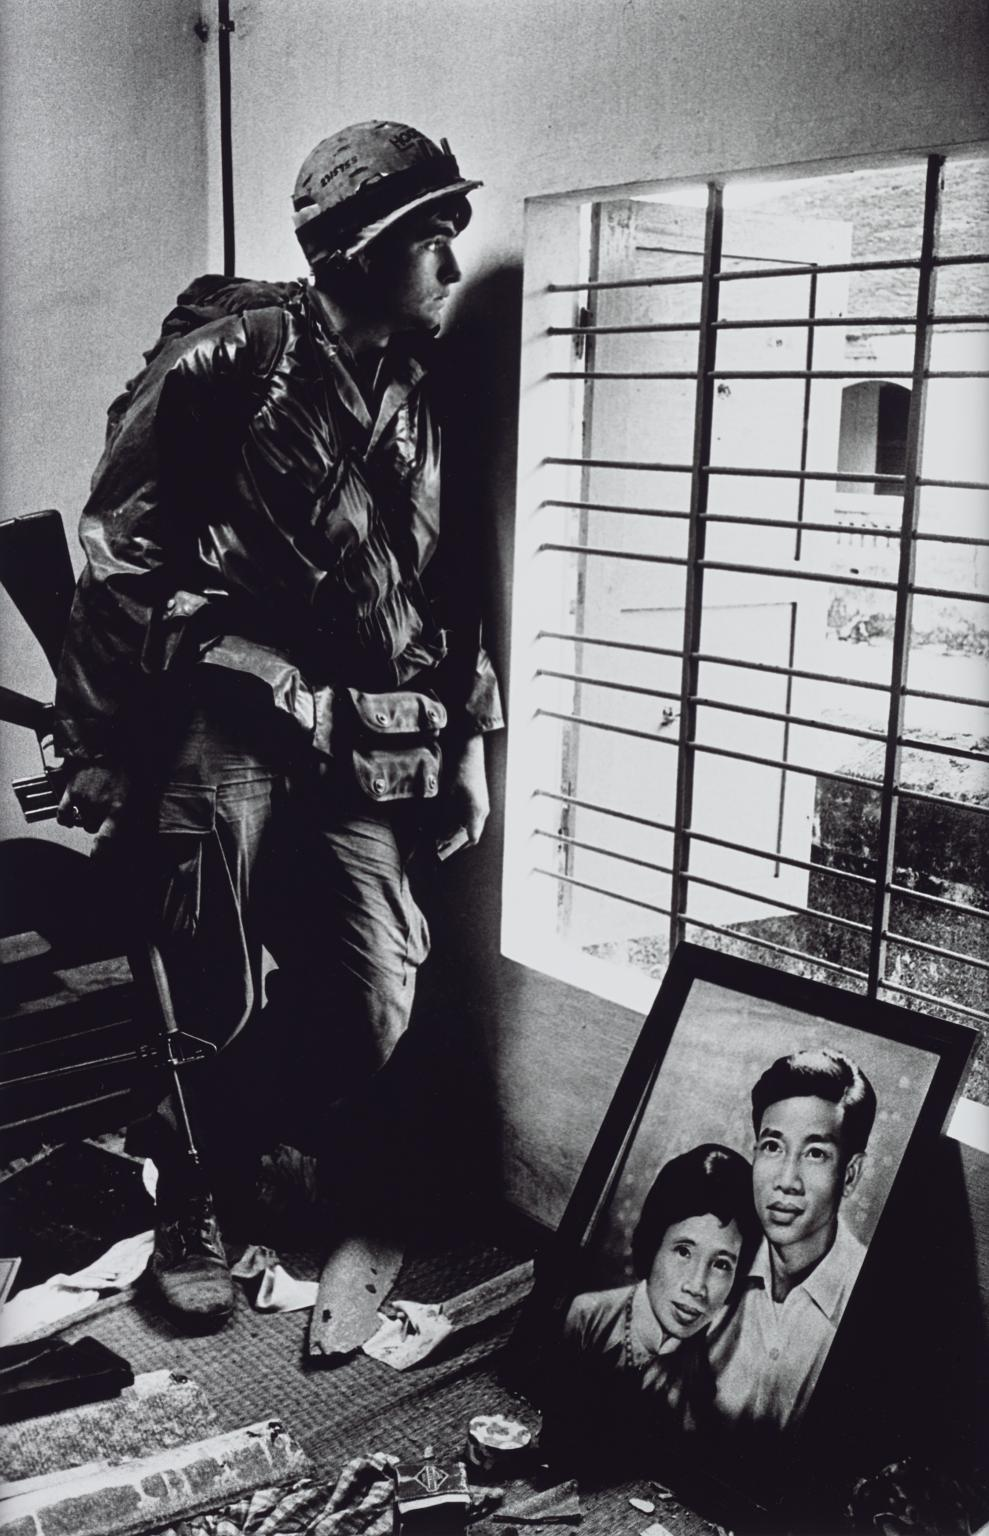 The Battle for the City of Hue, South Vietnam, US Marine Inside Civilian House 1968, printed 2013 by Don McCullin born 1935